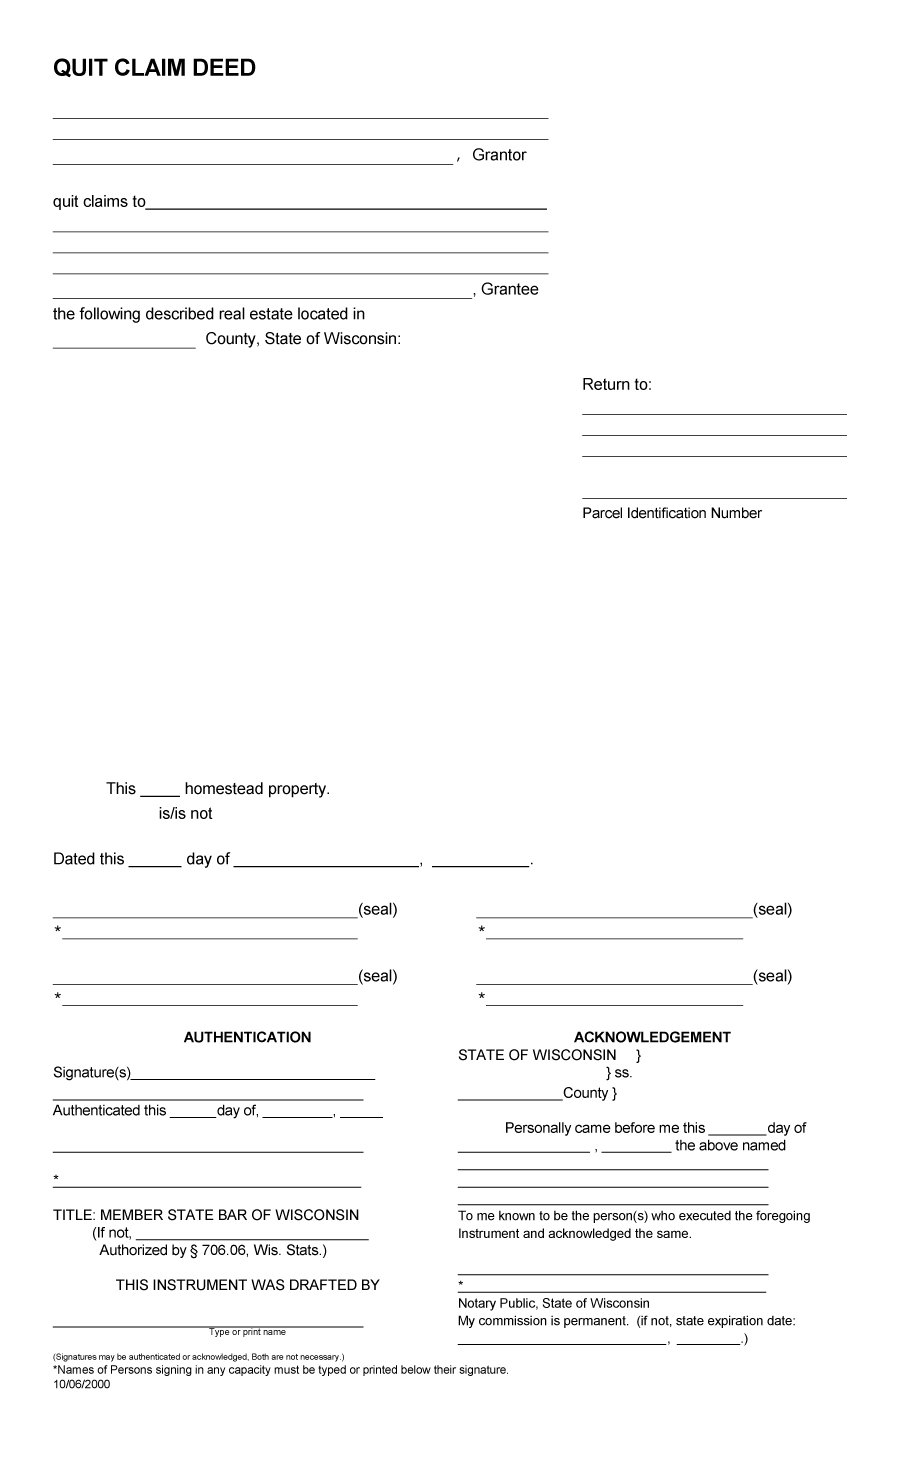 quit-claim-deed-template-39